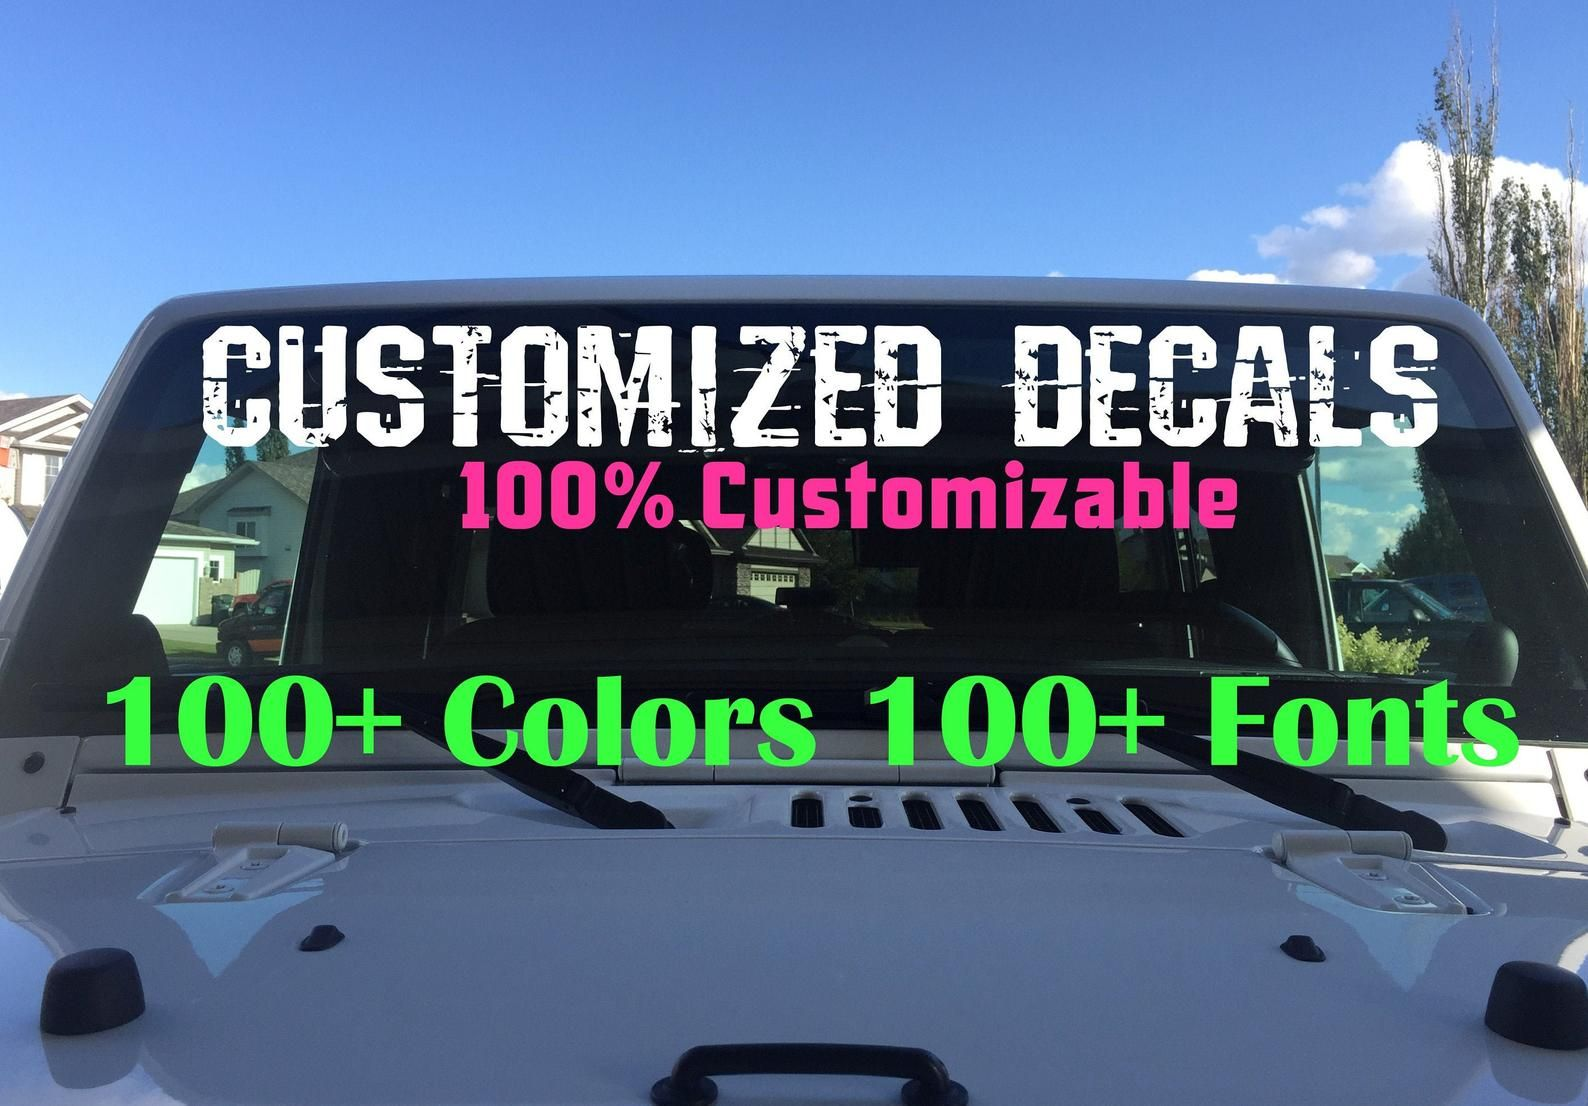 Custom Window Decals Window Sticker Car Truck Window Custom Stickers Windshield Decal Custom Car Decal Company Name Decals Personalized